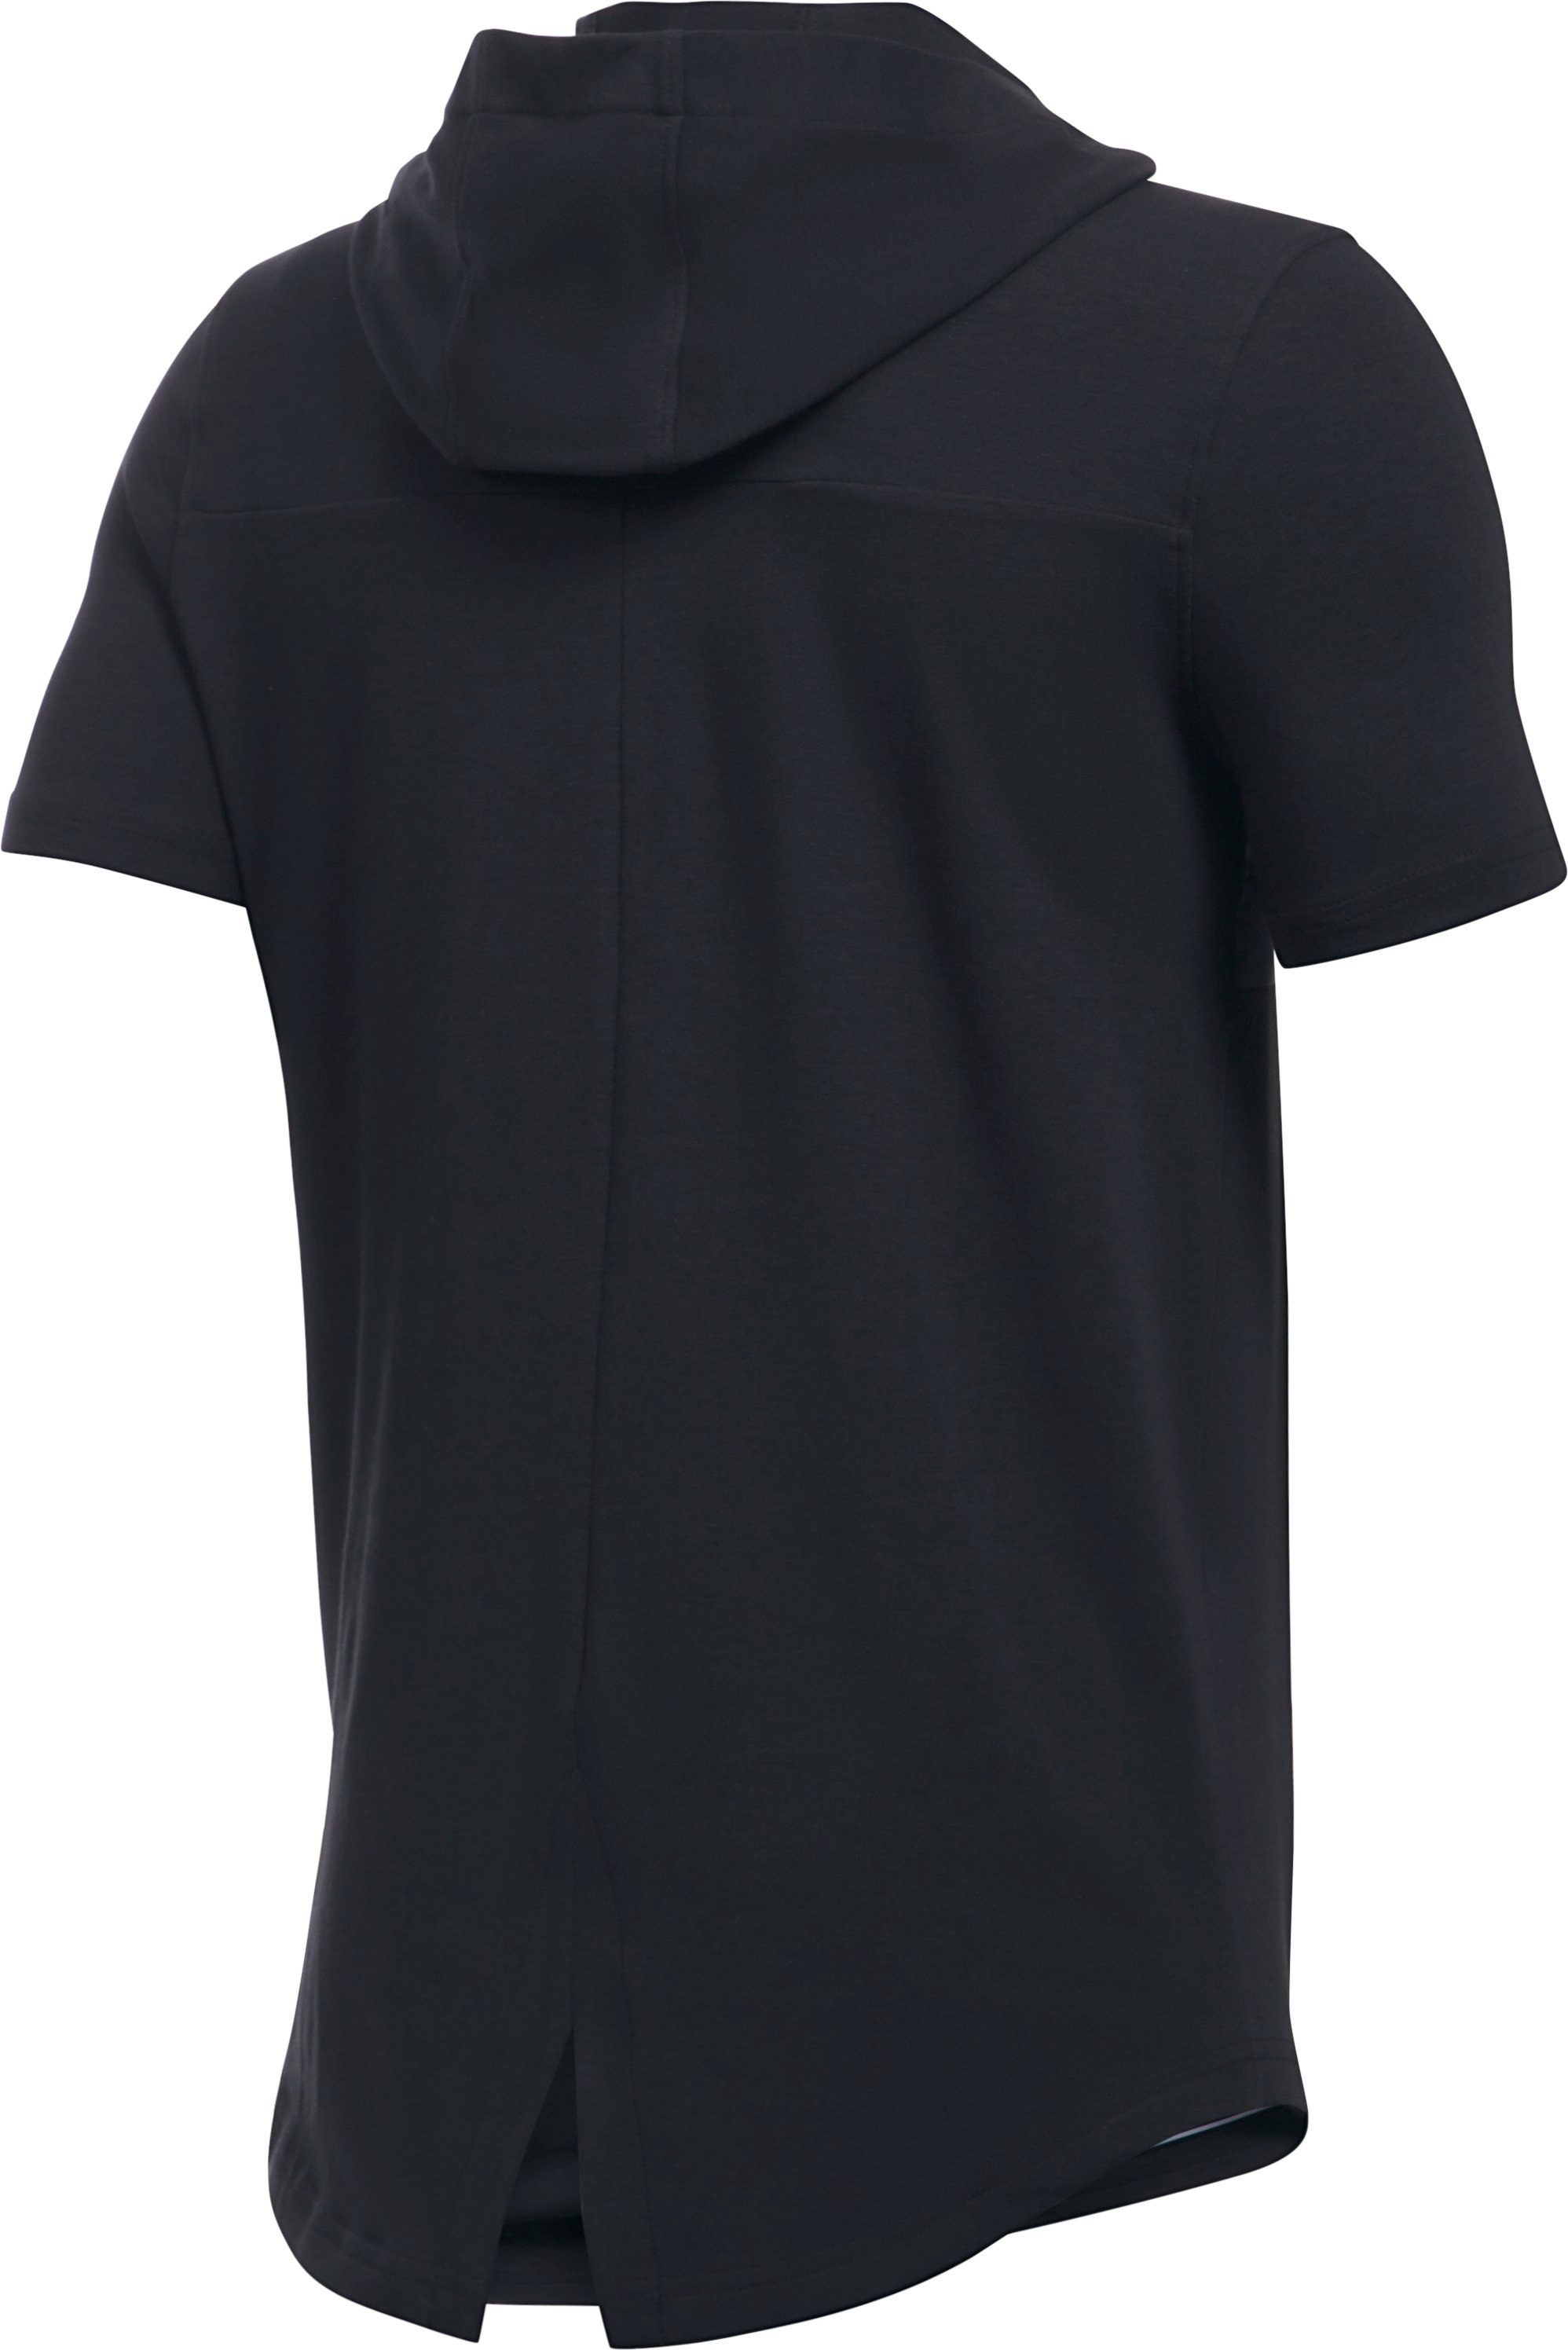 SC30 Splash SS Hooded Tee, Black , undefined